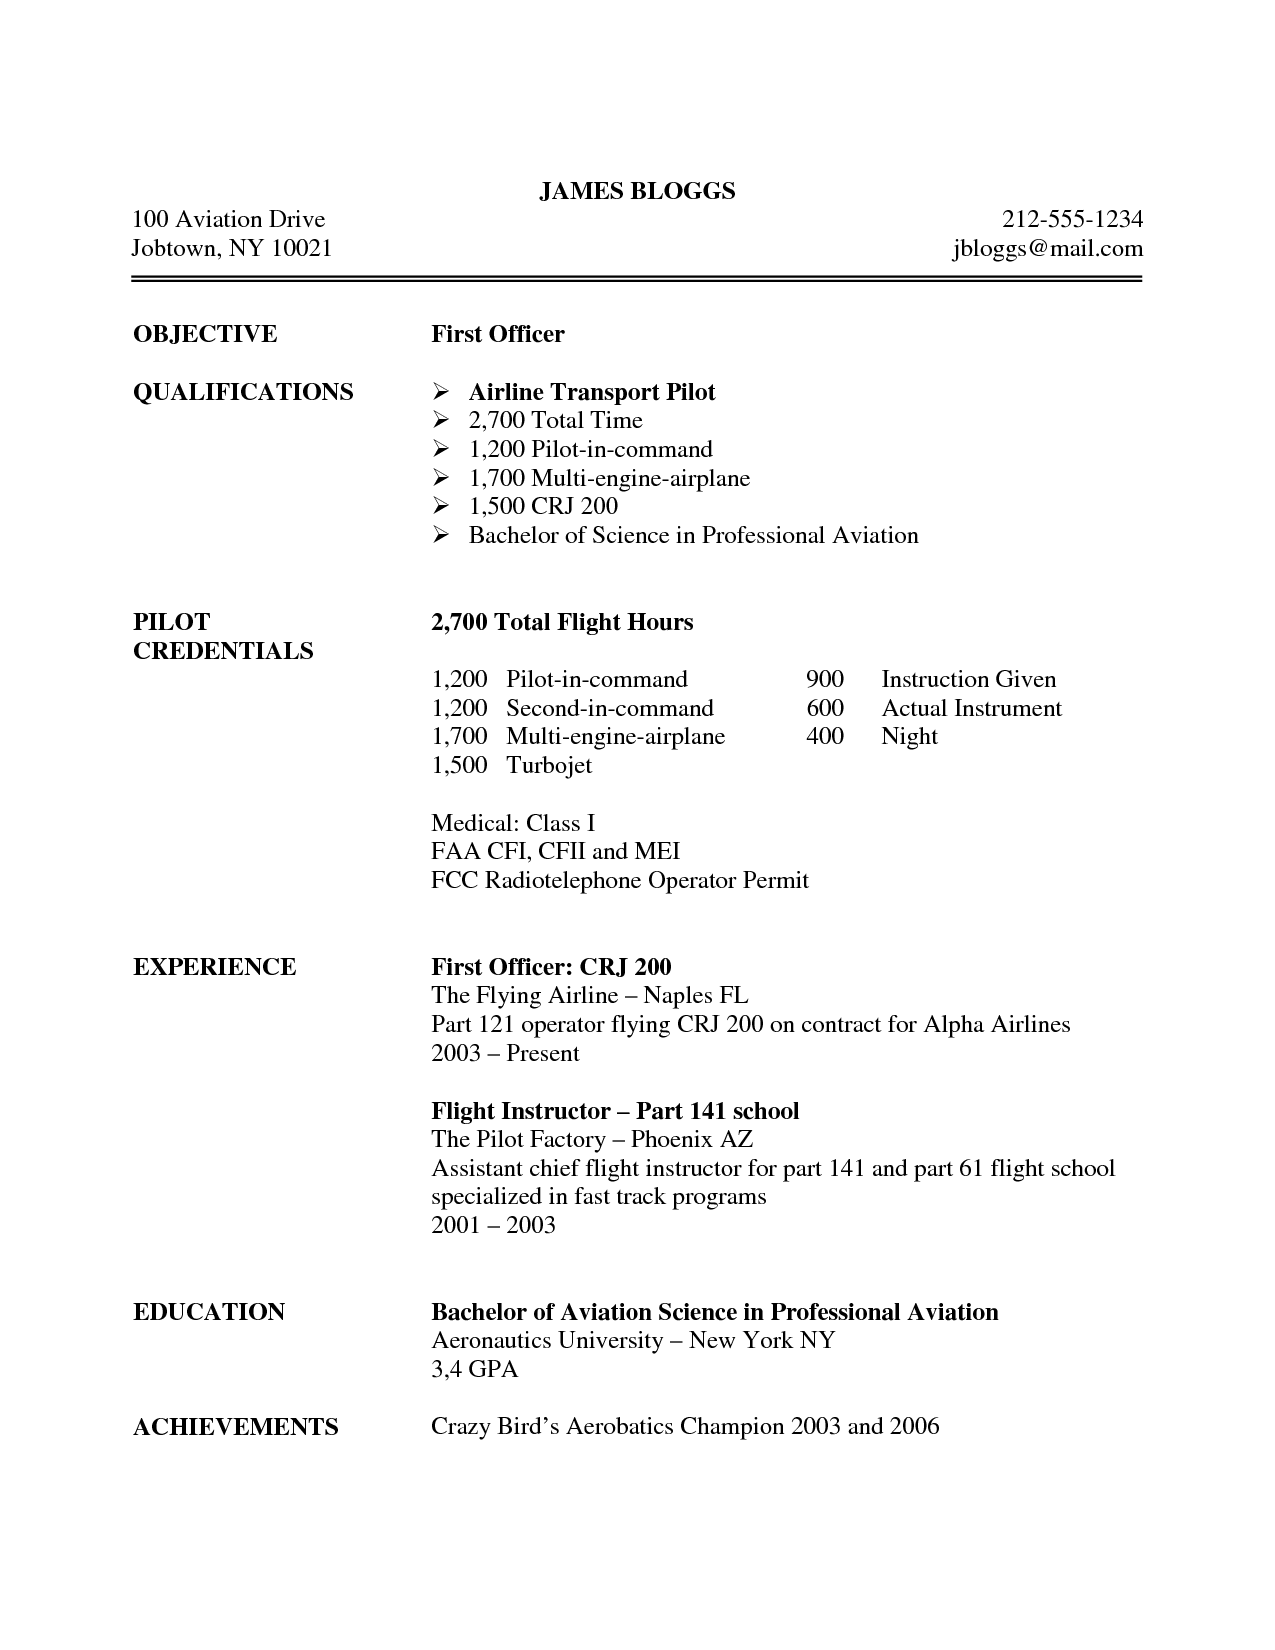 pilot resume objective examples